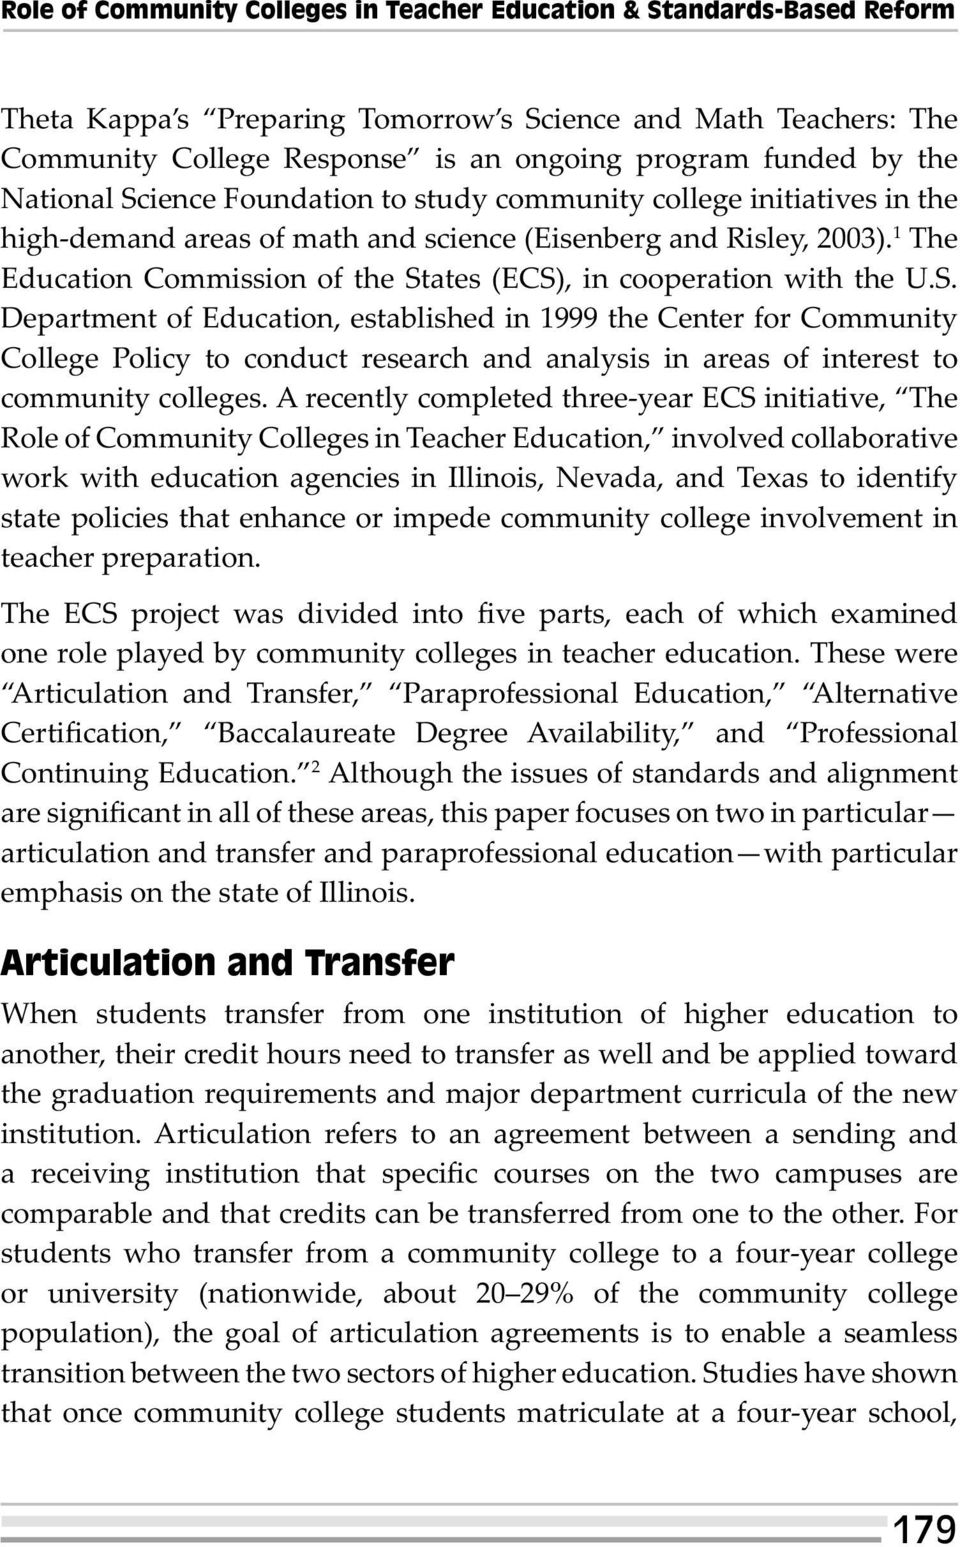 1 The Education Commission of the States (ECS), in cooperation with the U.S. Department of Education, established in 1999 the Center for Community College Policy to conduct research and analysis in areas of interest to community colleges.